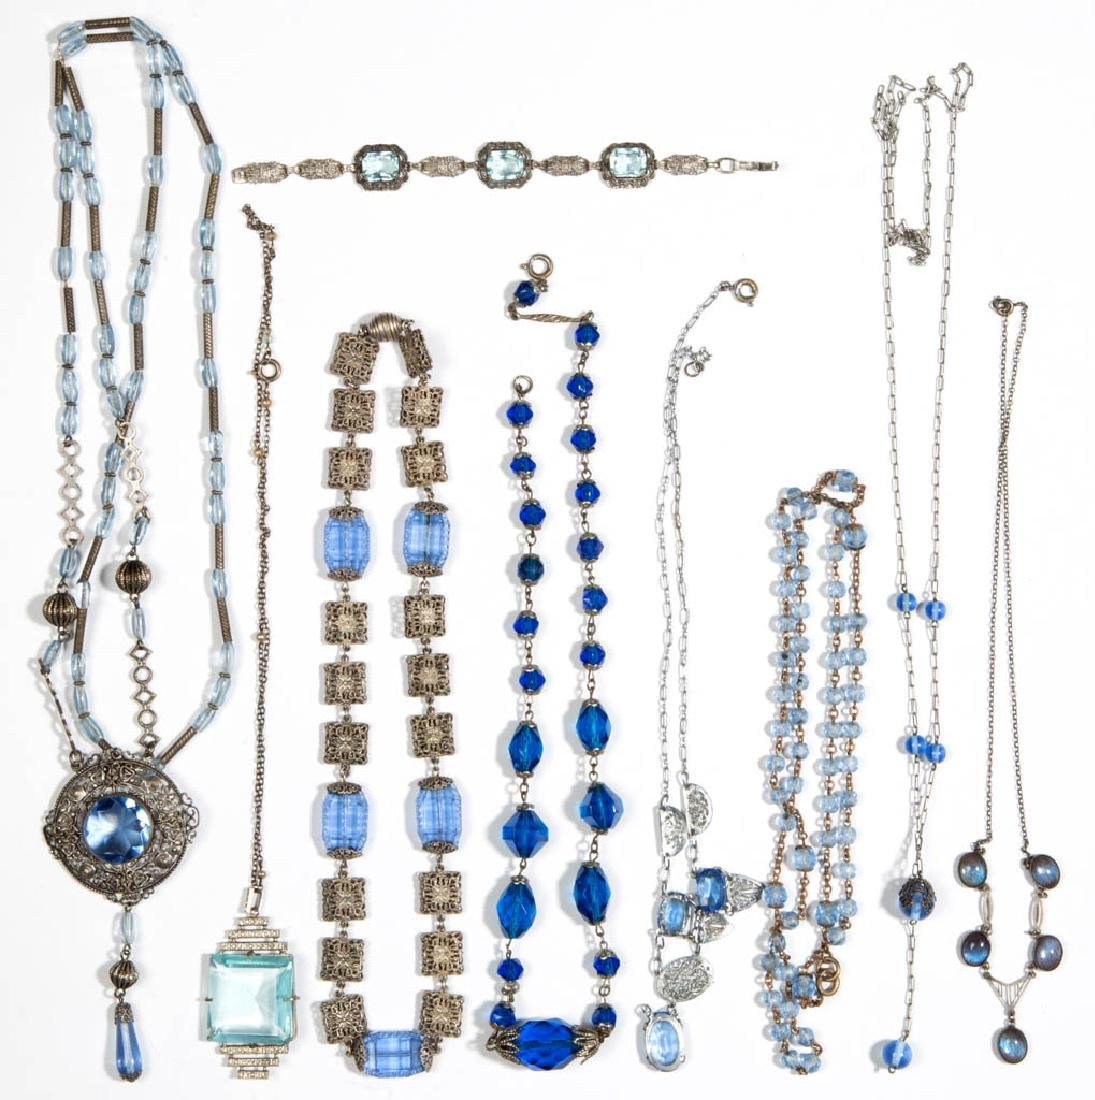 ASSORTED ANTIQUE / VINTAGE GLASS BEAD COSTUME JEWELRY,